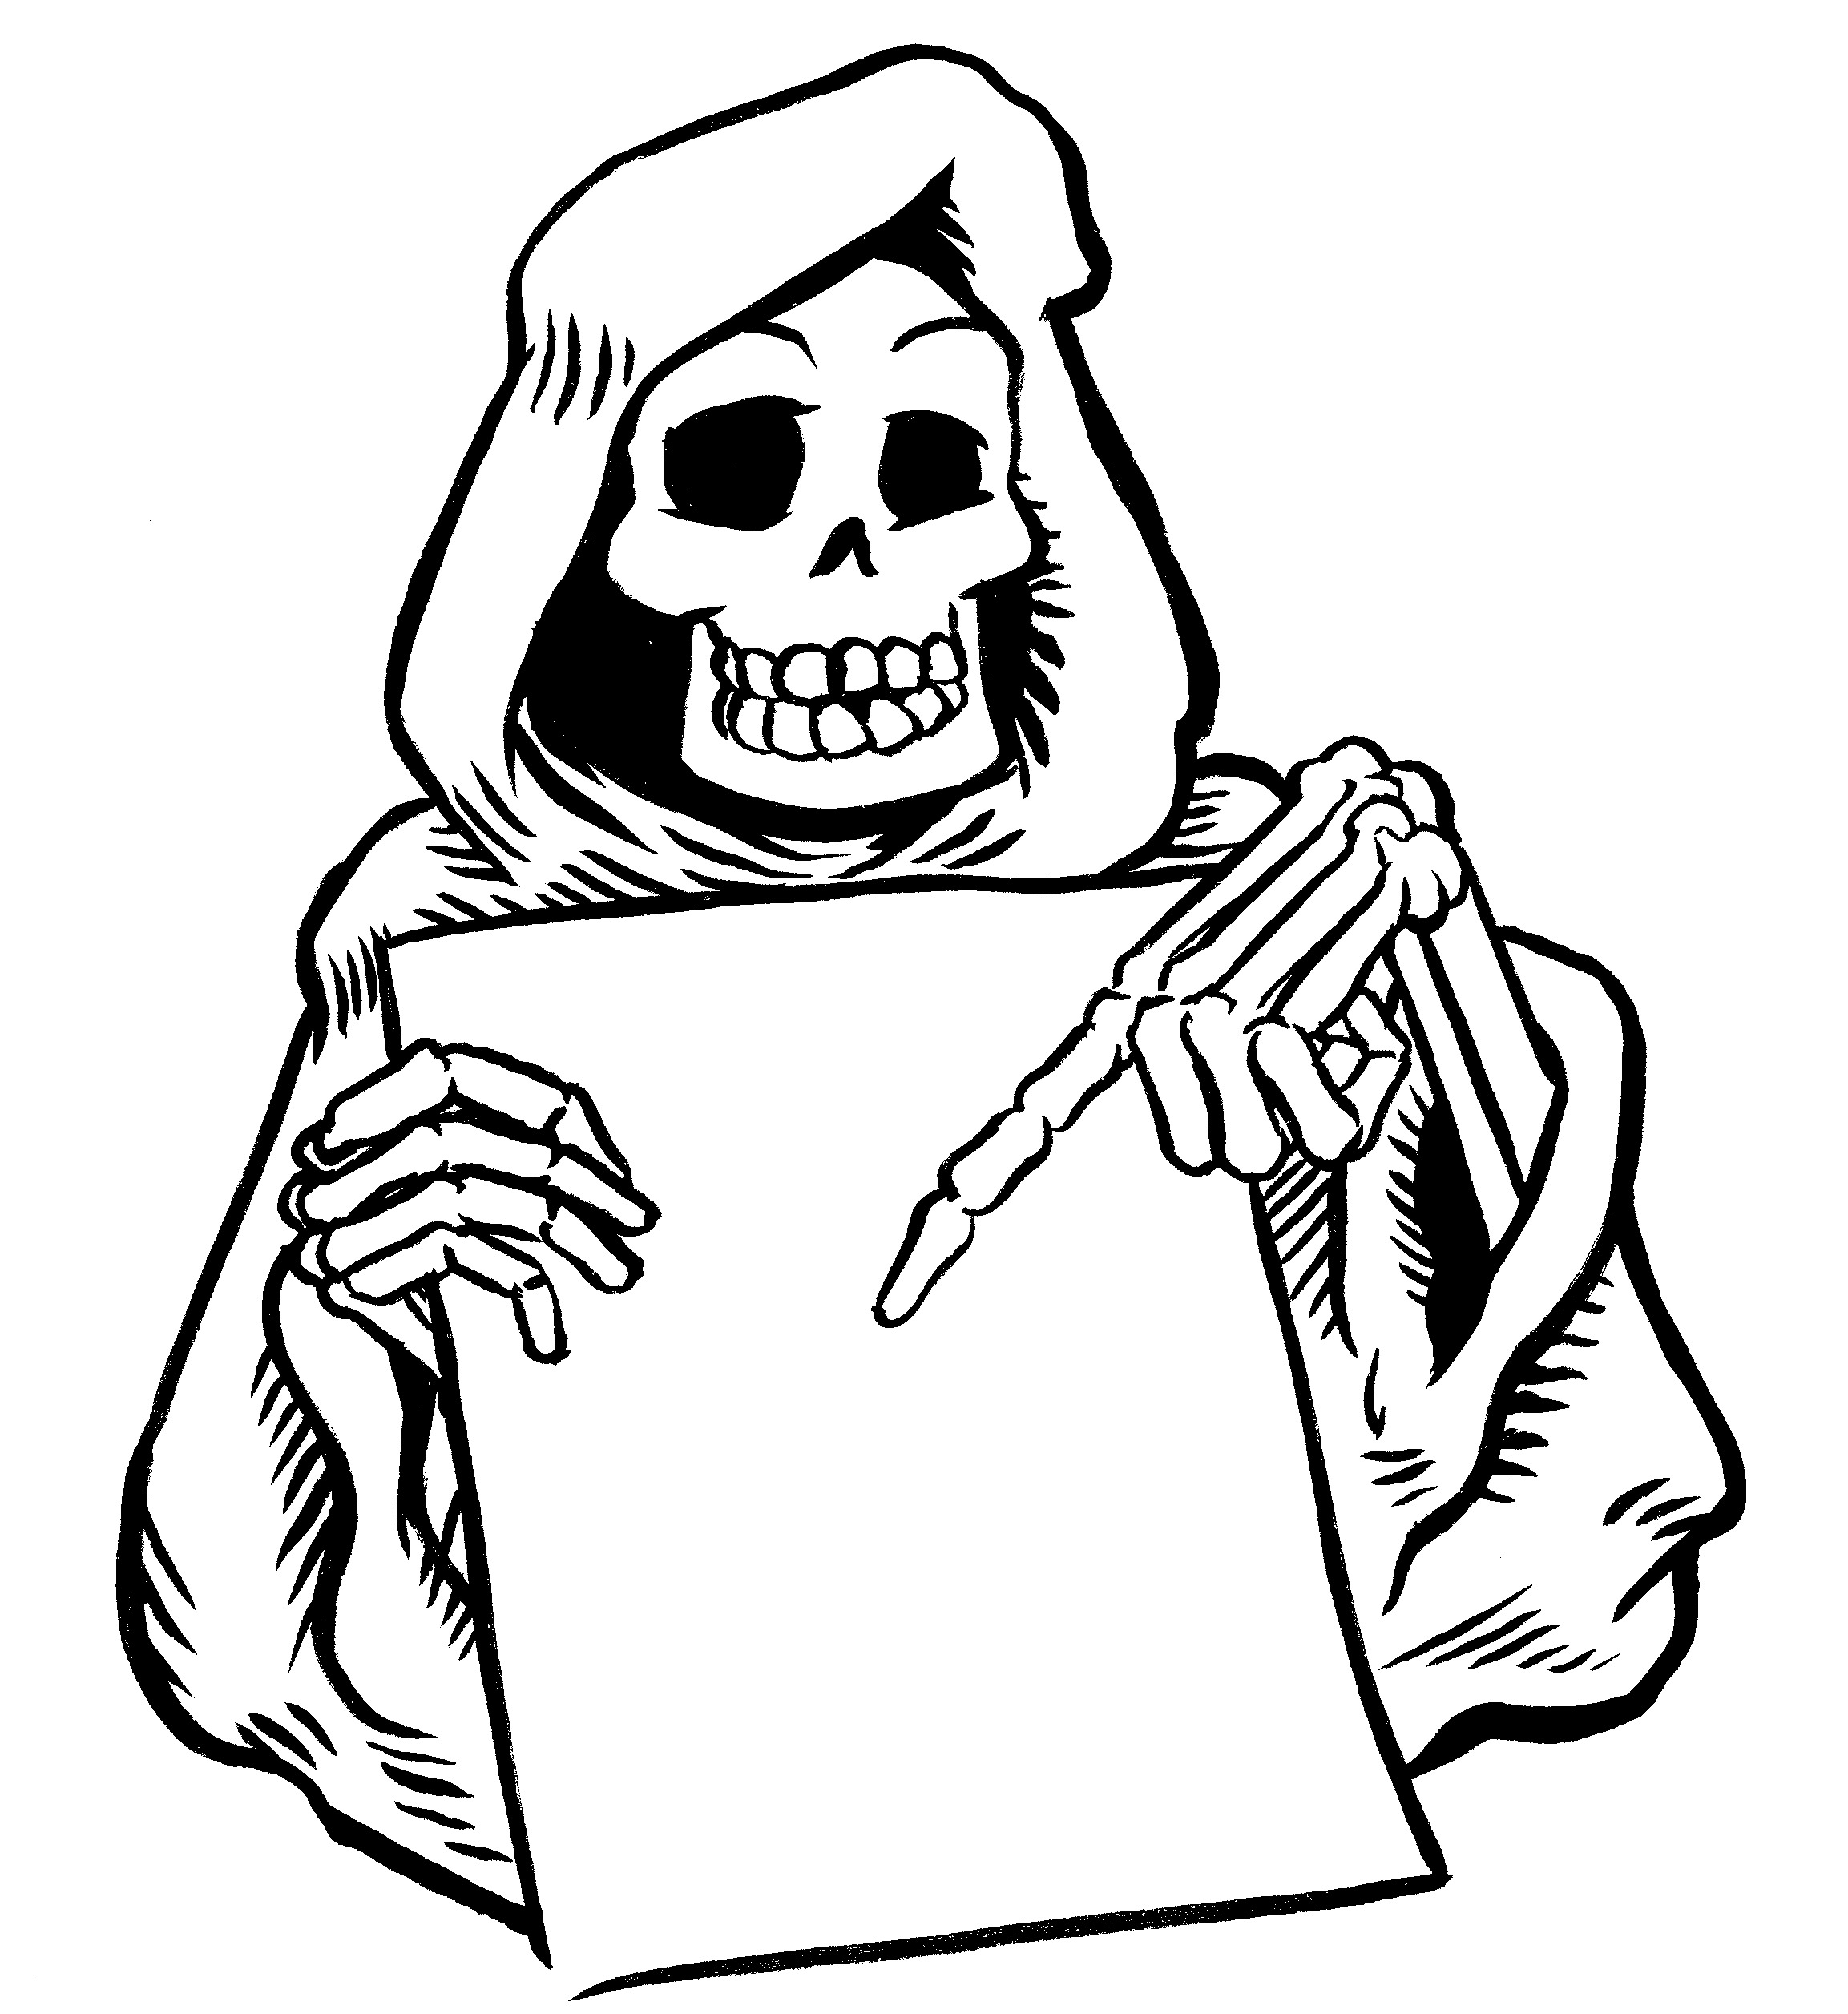 free walking dead coloring pages the walking dead coloring page printable coloring pages pages dead free coloring walking